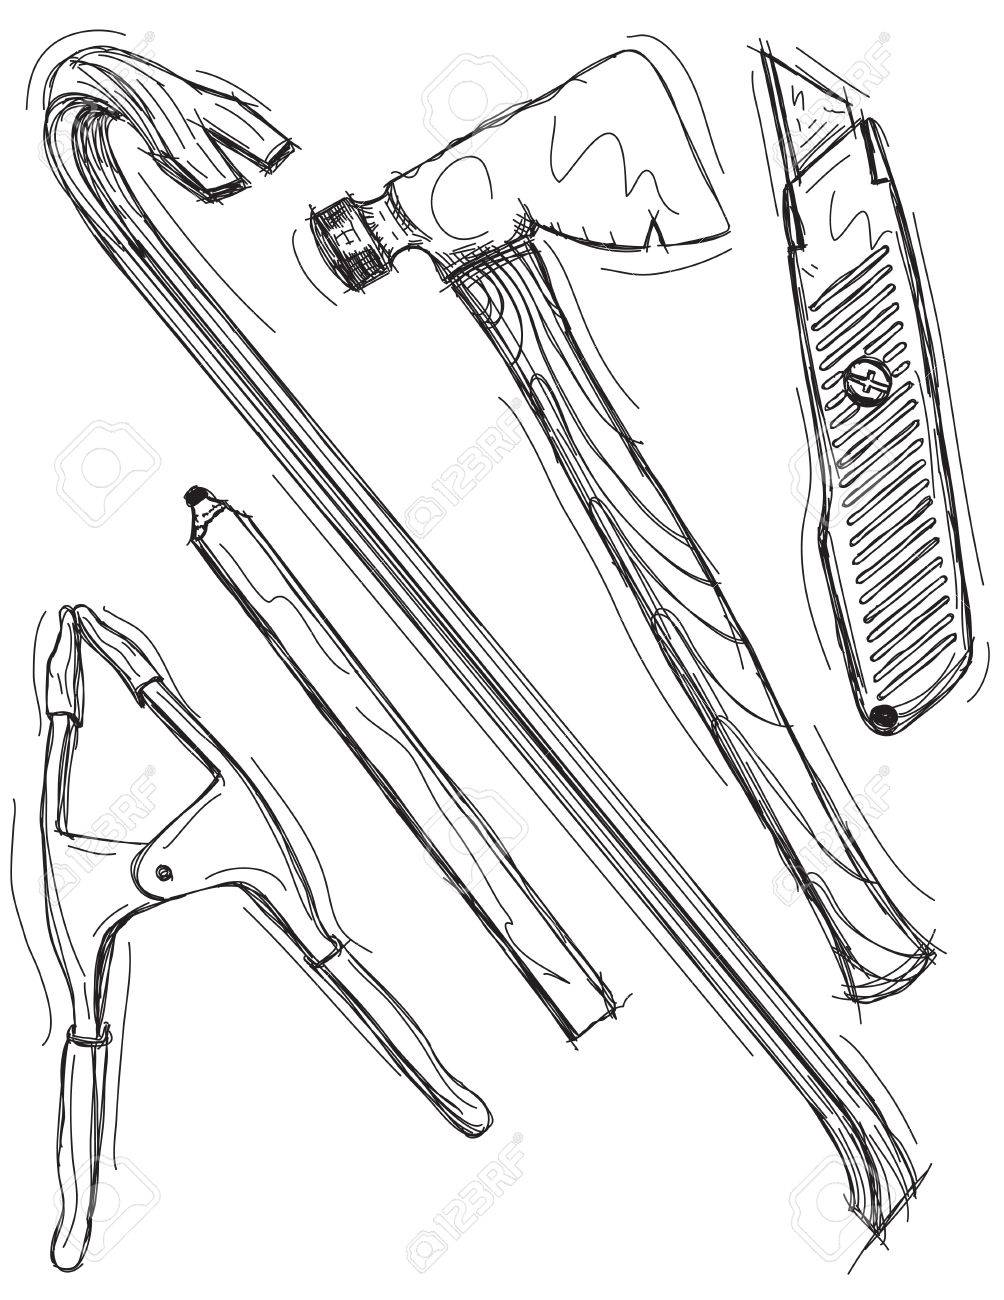 Free Construction Drawing at GetDrawings.com   Free for personal use ...